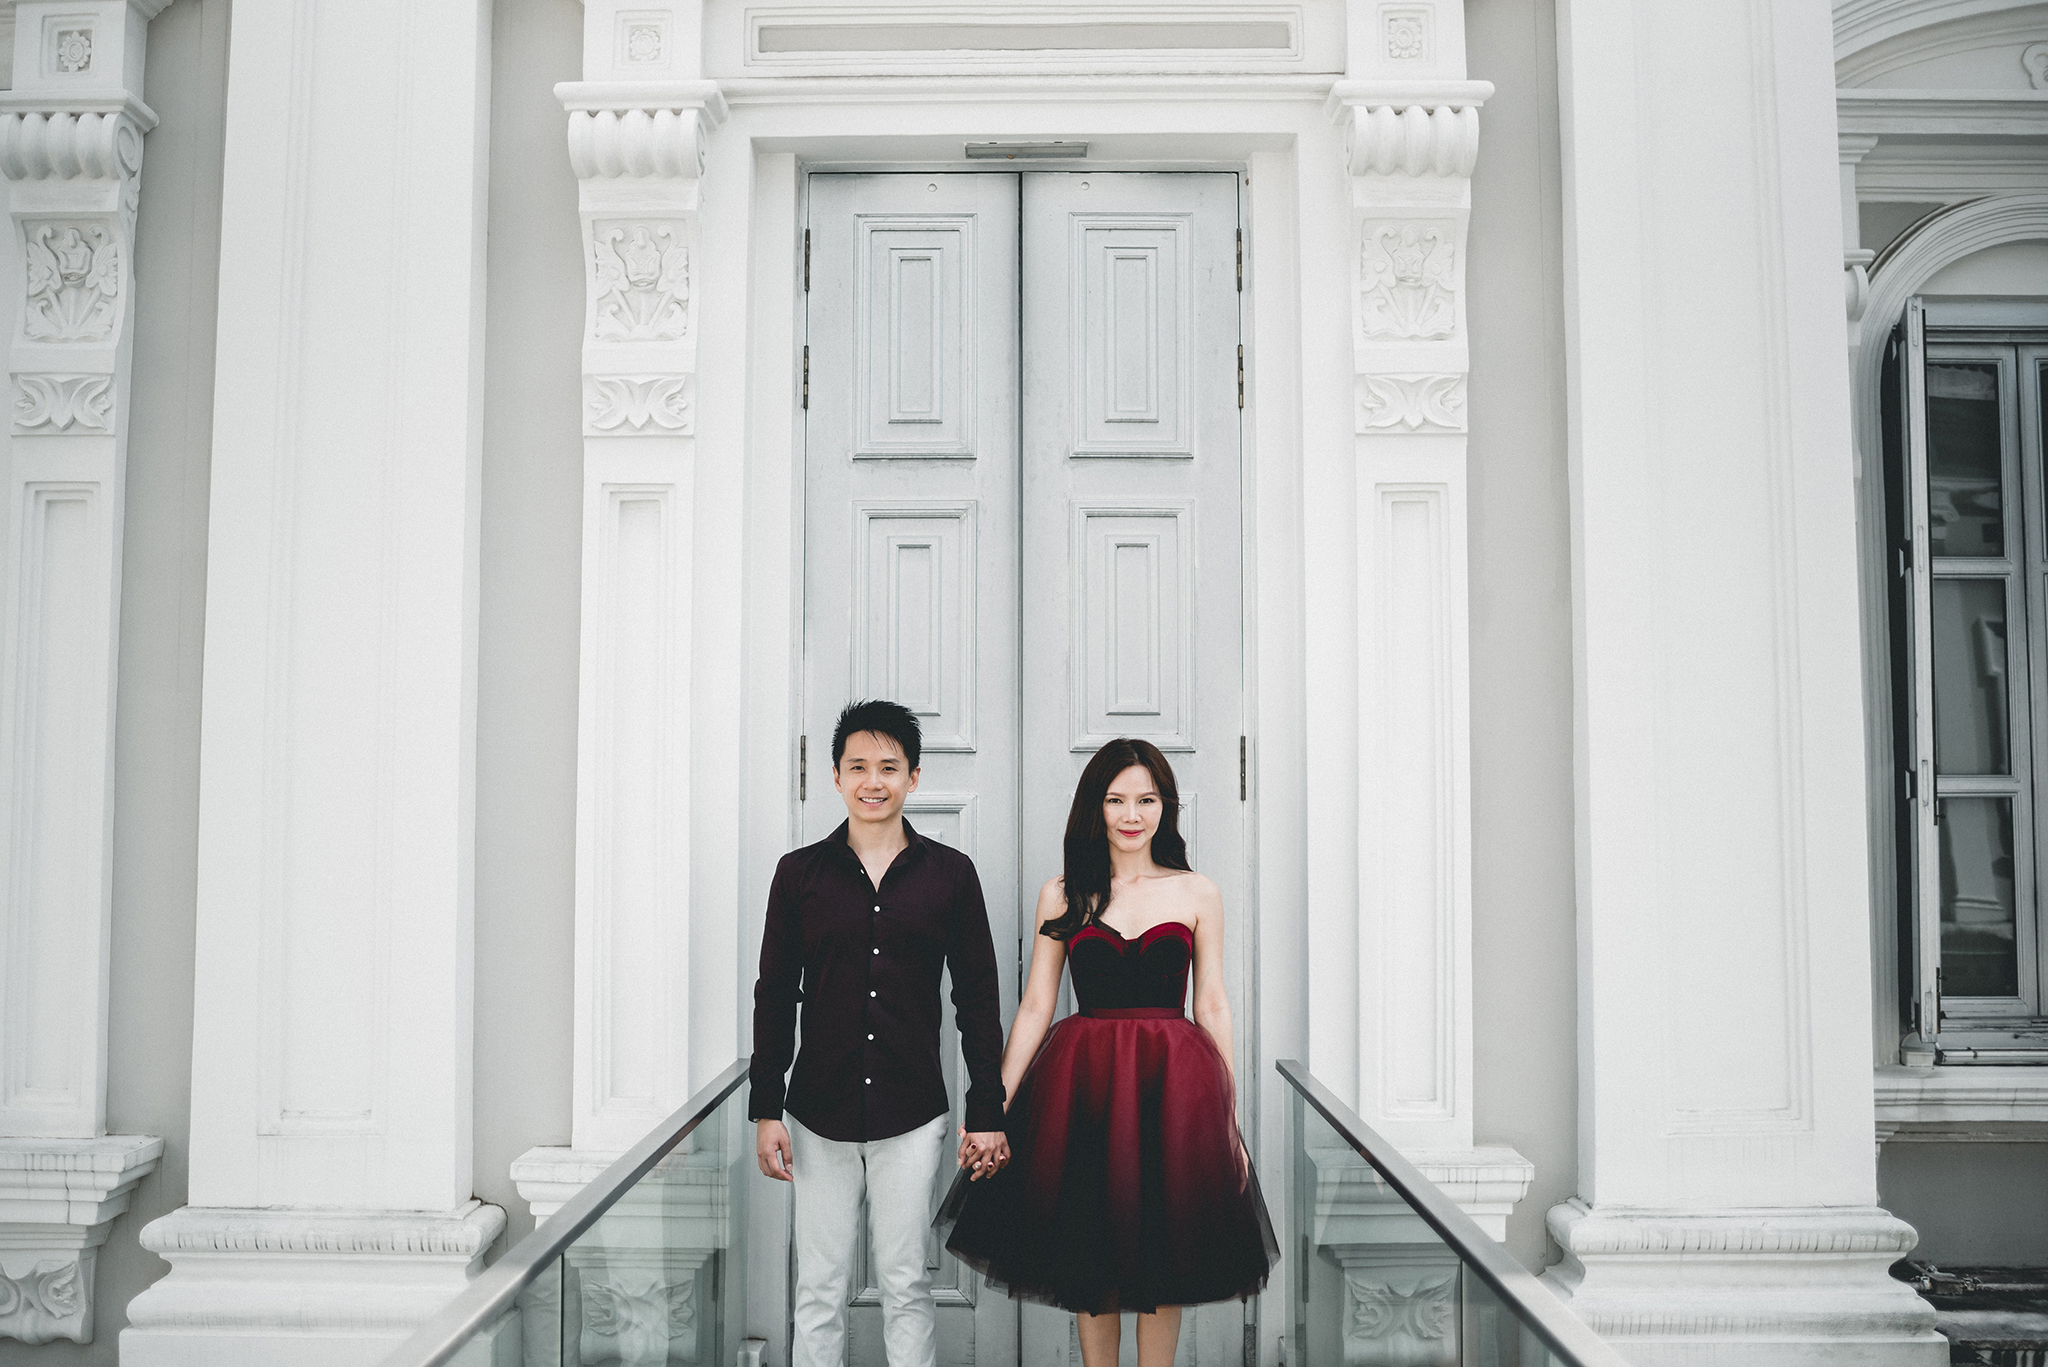 Prewedding Nationa Gallery 00009.JPG